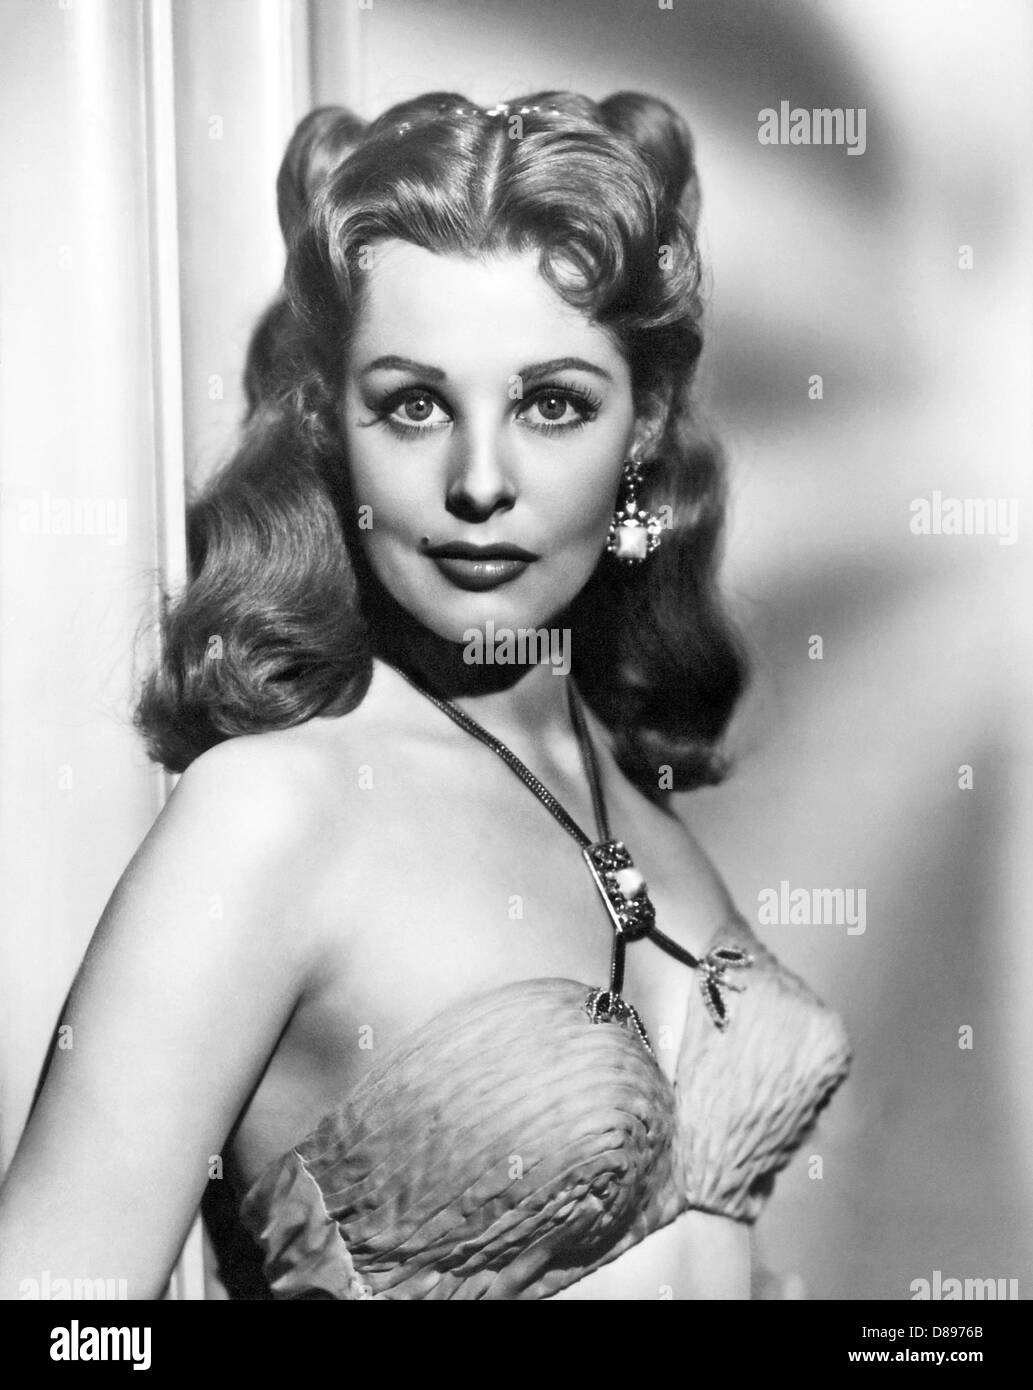 DESERT LEGION 1953 Universal Pictures film with Arlene Dahl - Stock Image